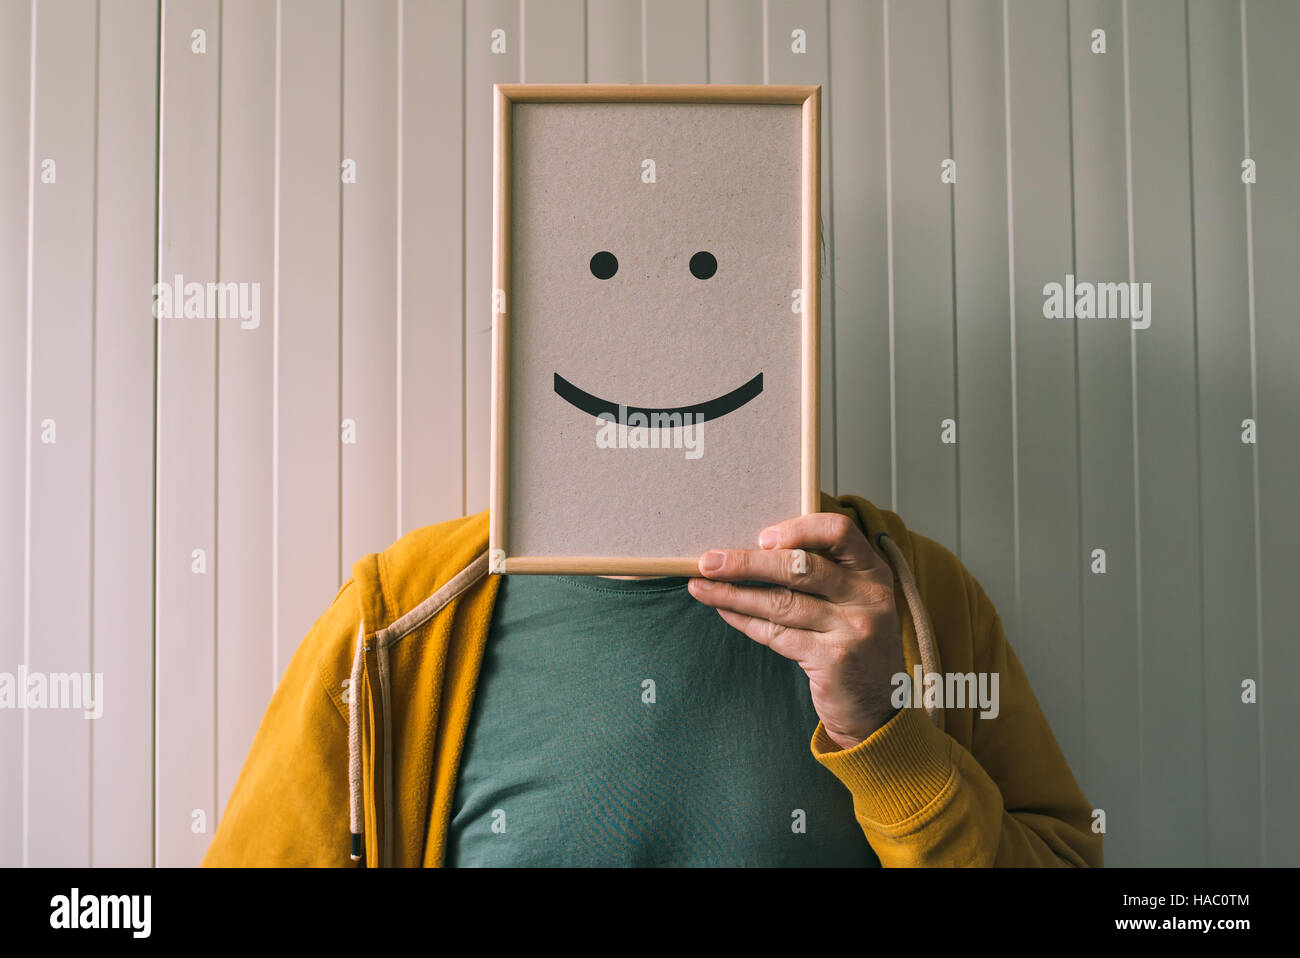 Put a happy face on, happiness and cheerful emotions concept, man holding picture frame with smiley emoticon printed - Stock Image